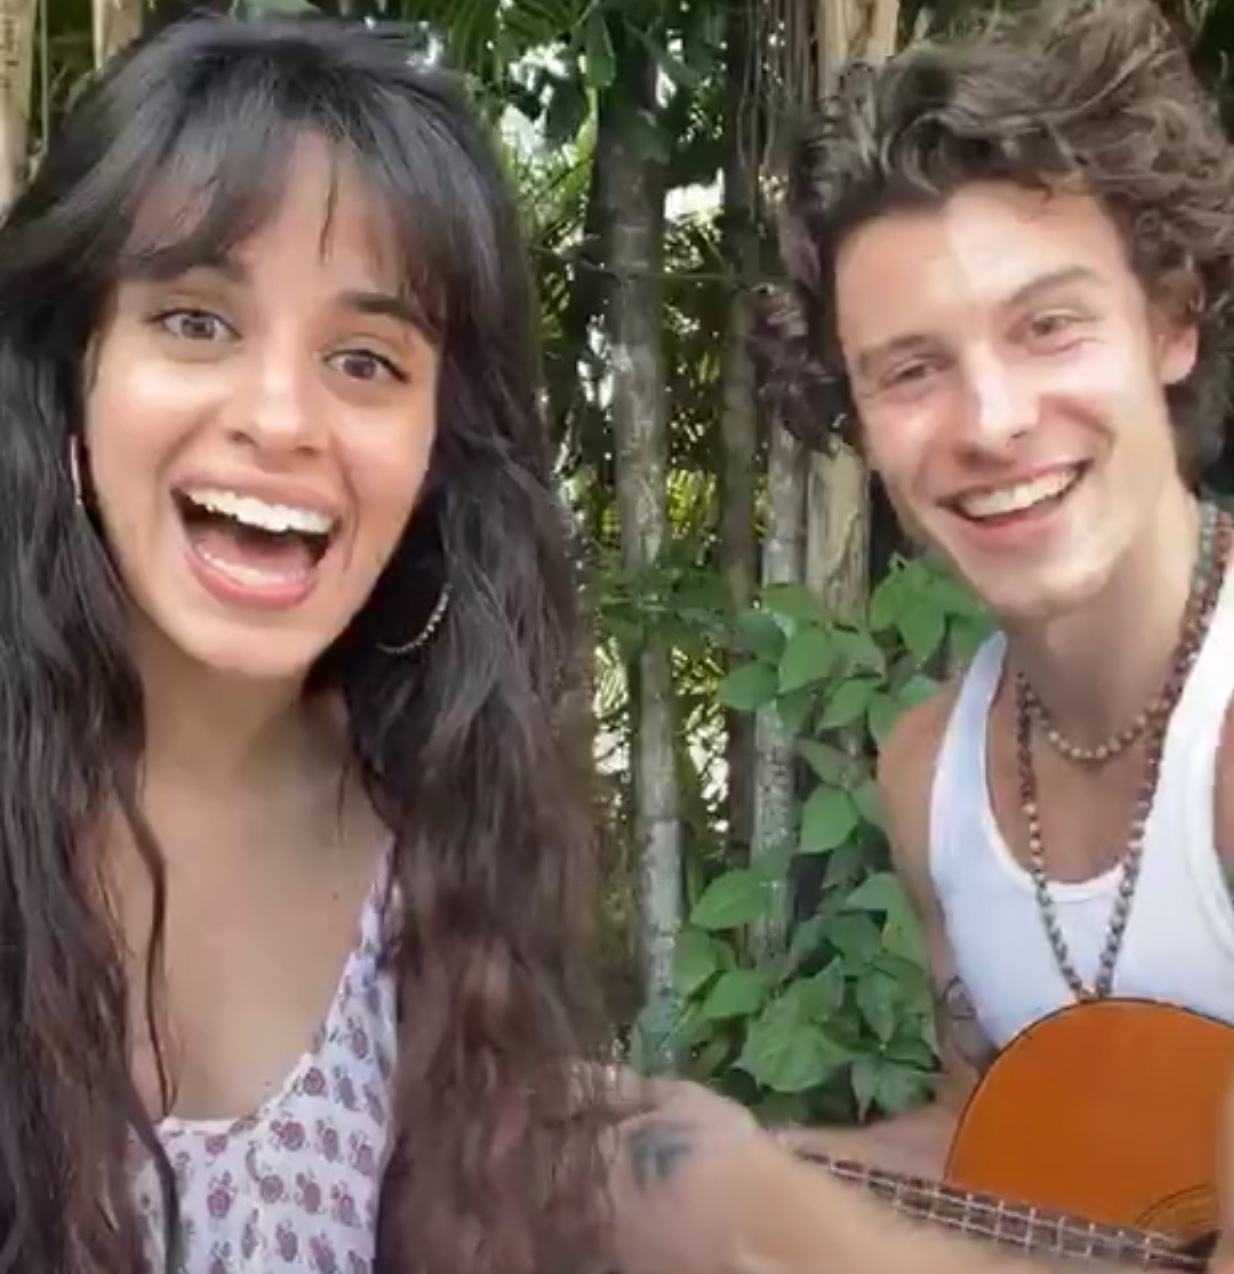 Camila Cabello and Shawn Mendes #togetherathome